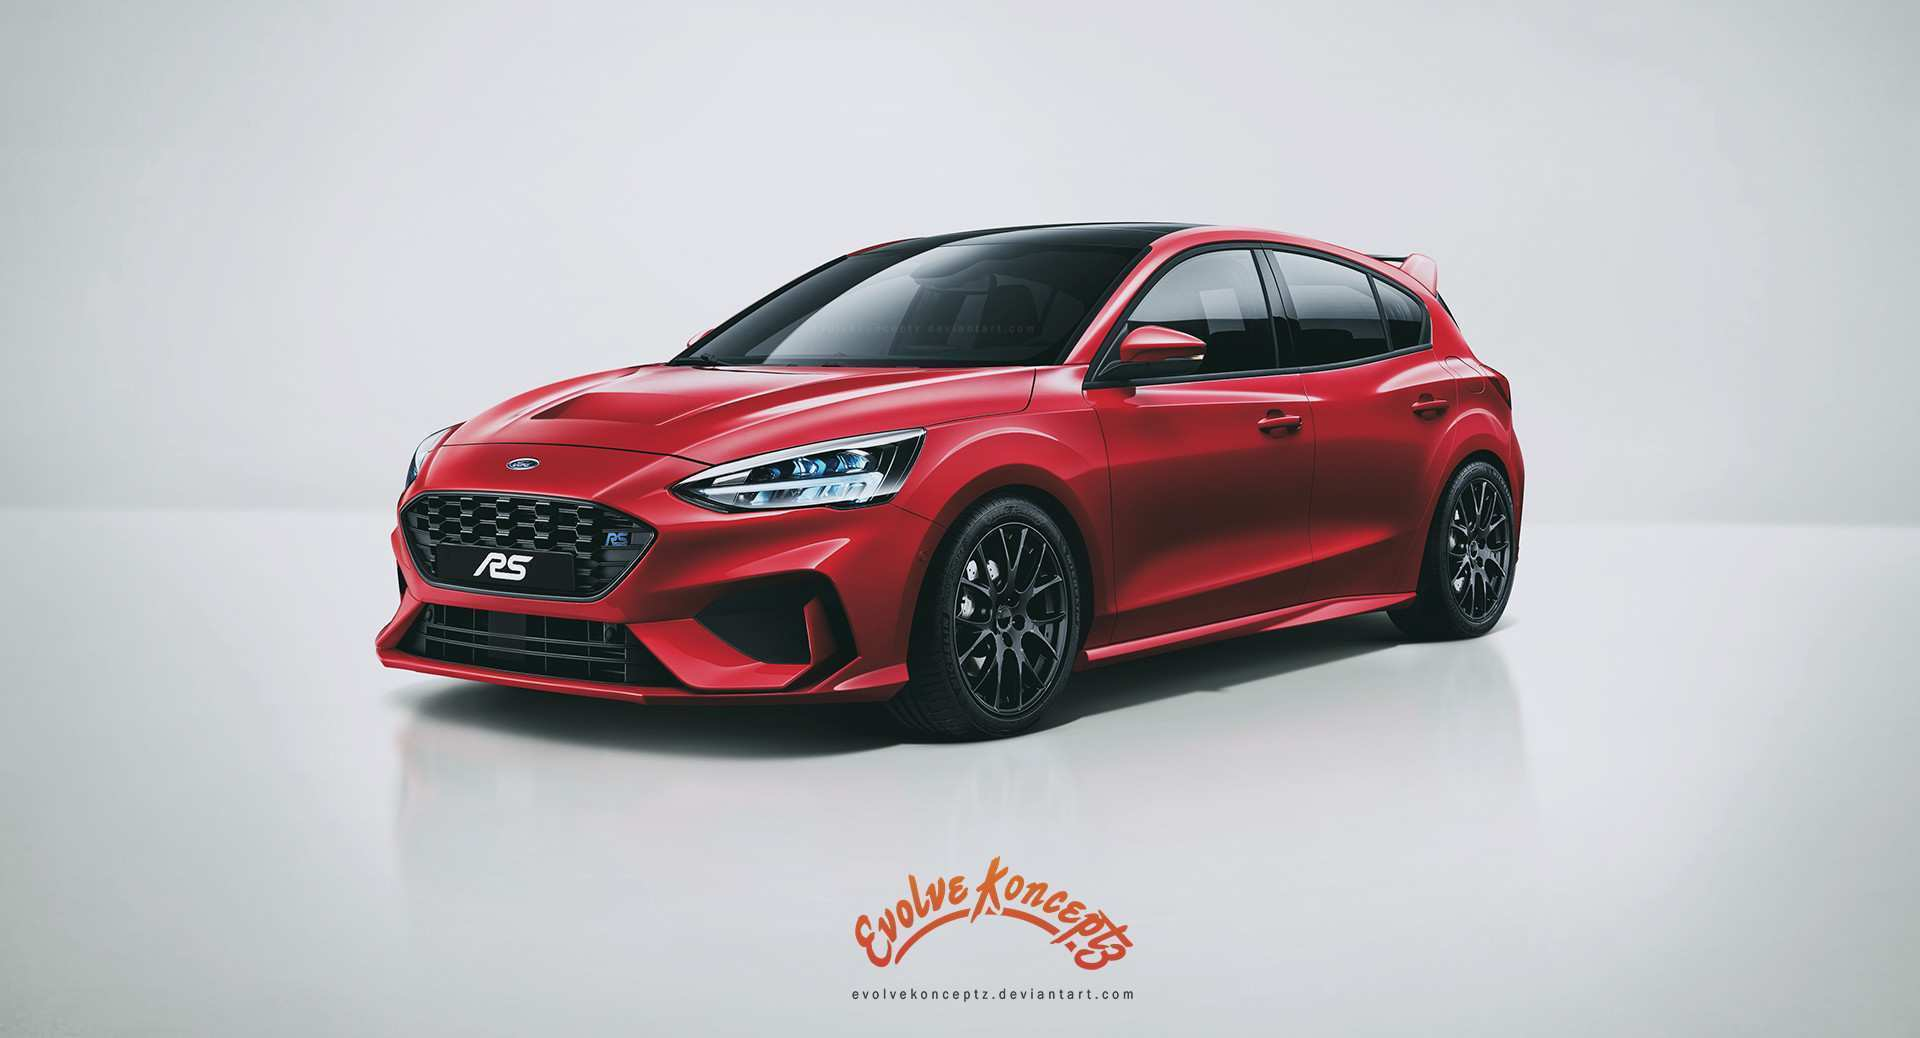 59 New 2019 Ford Focus Rs St Price Design And Review